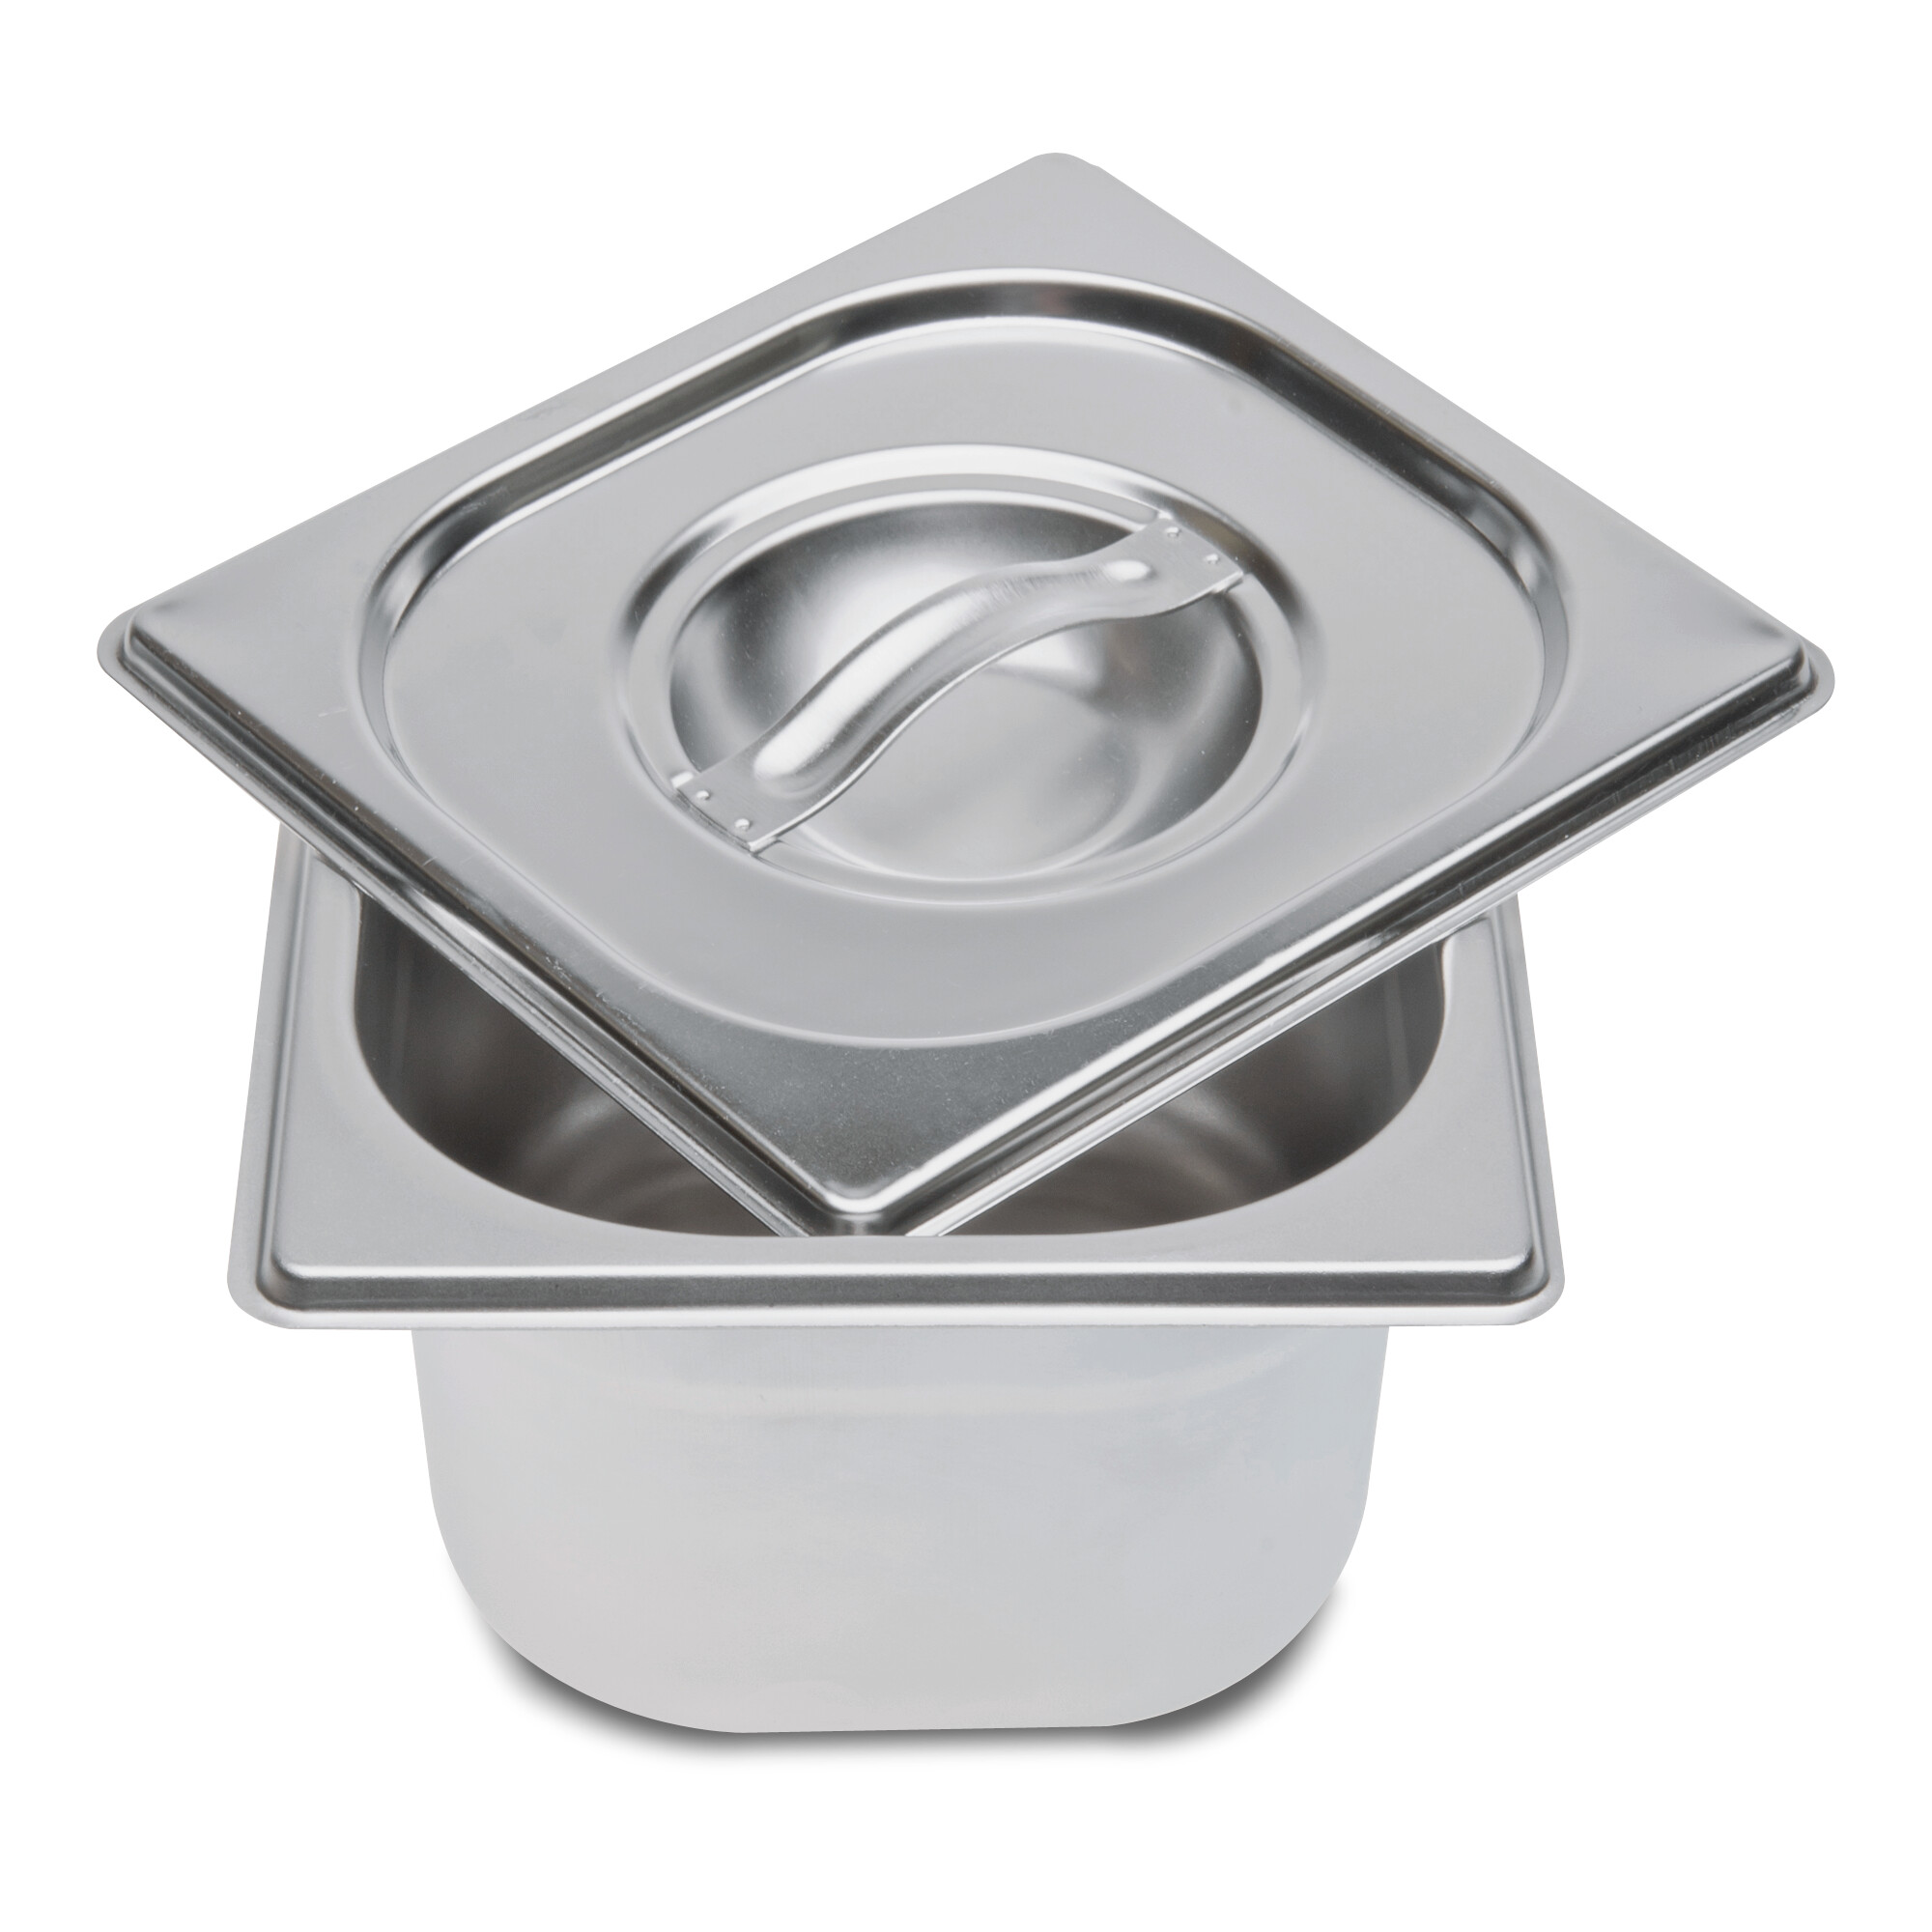 Stainless steel container - with lid